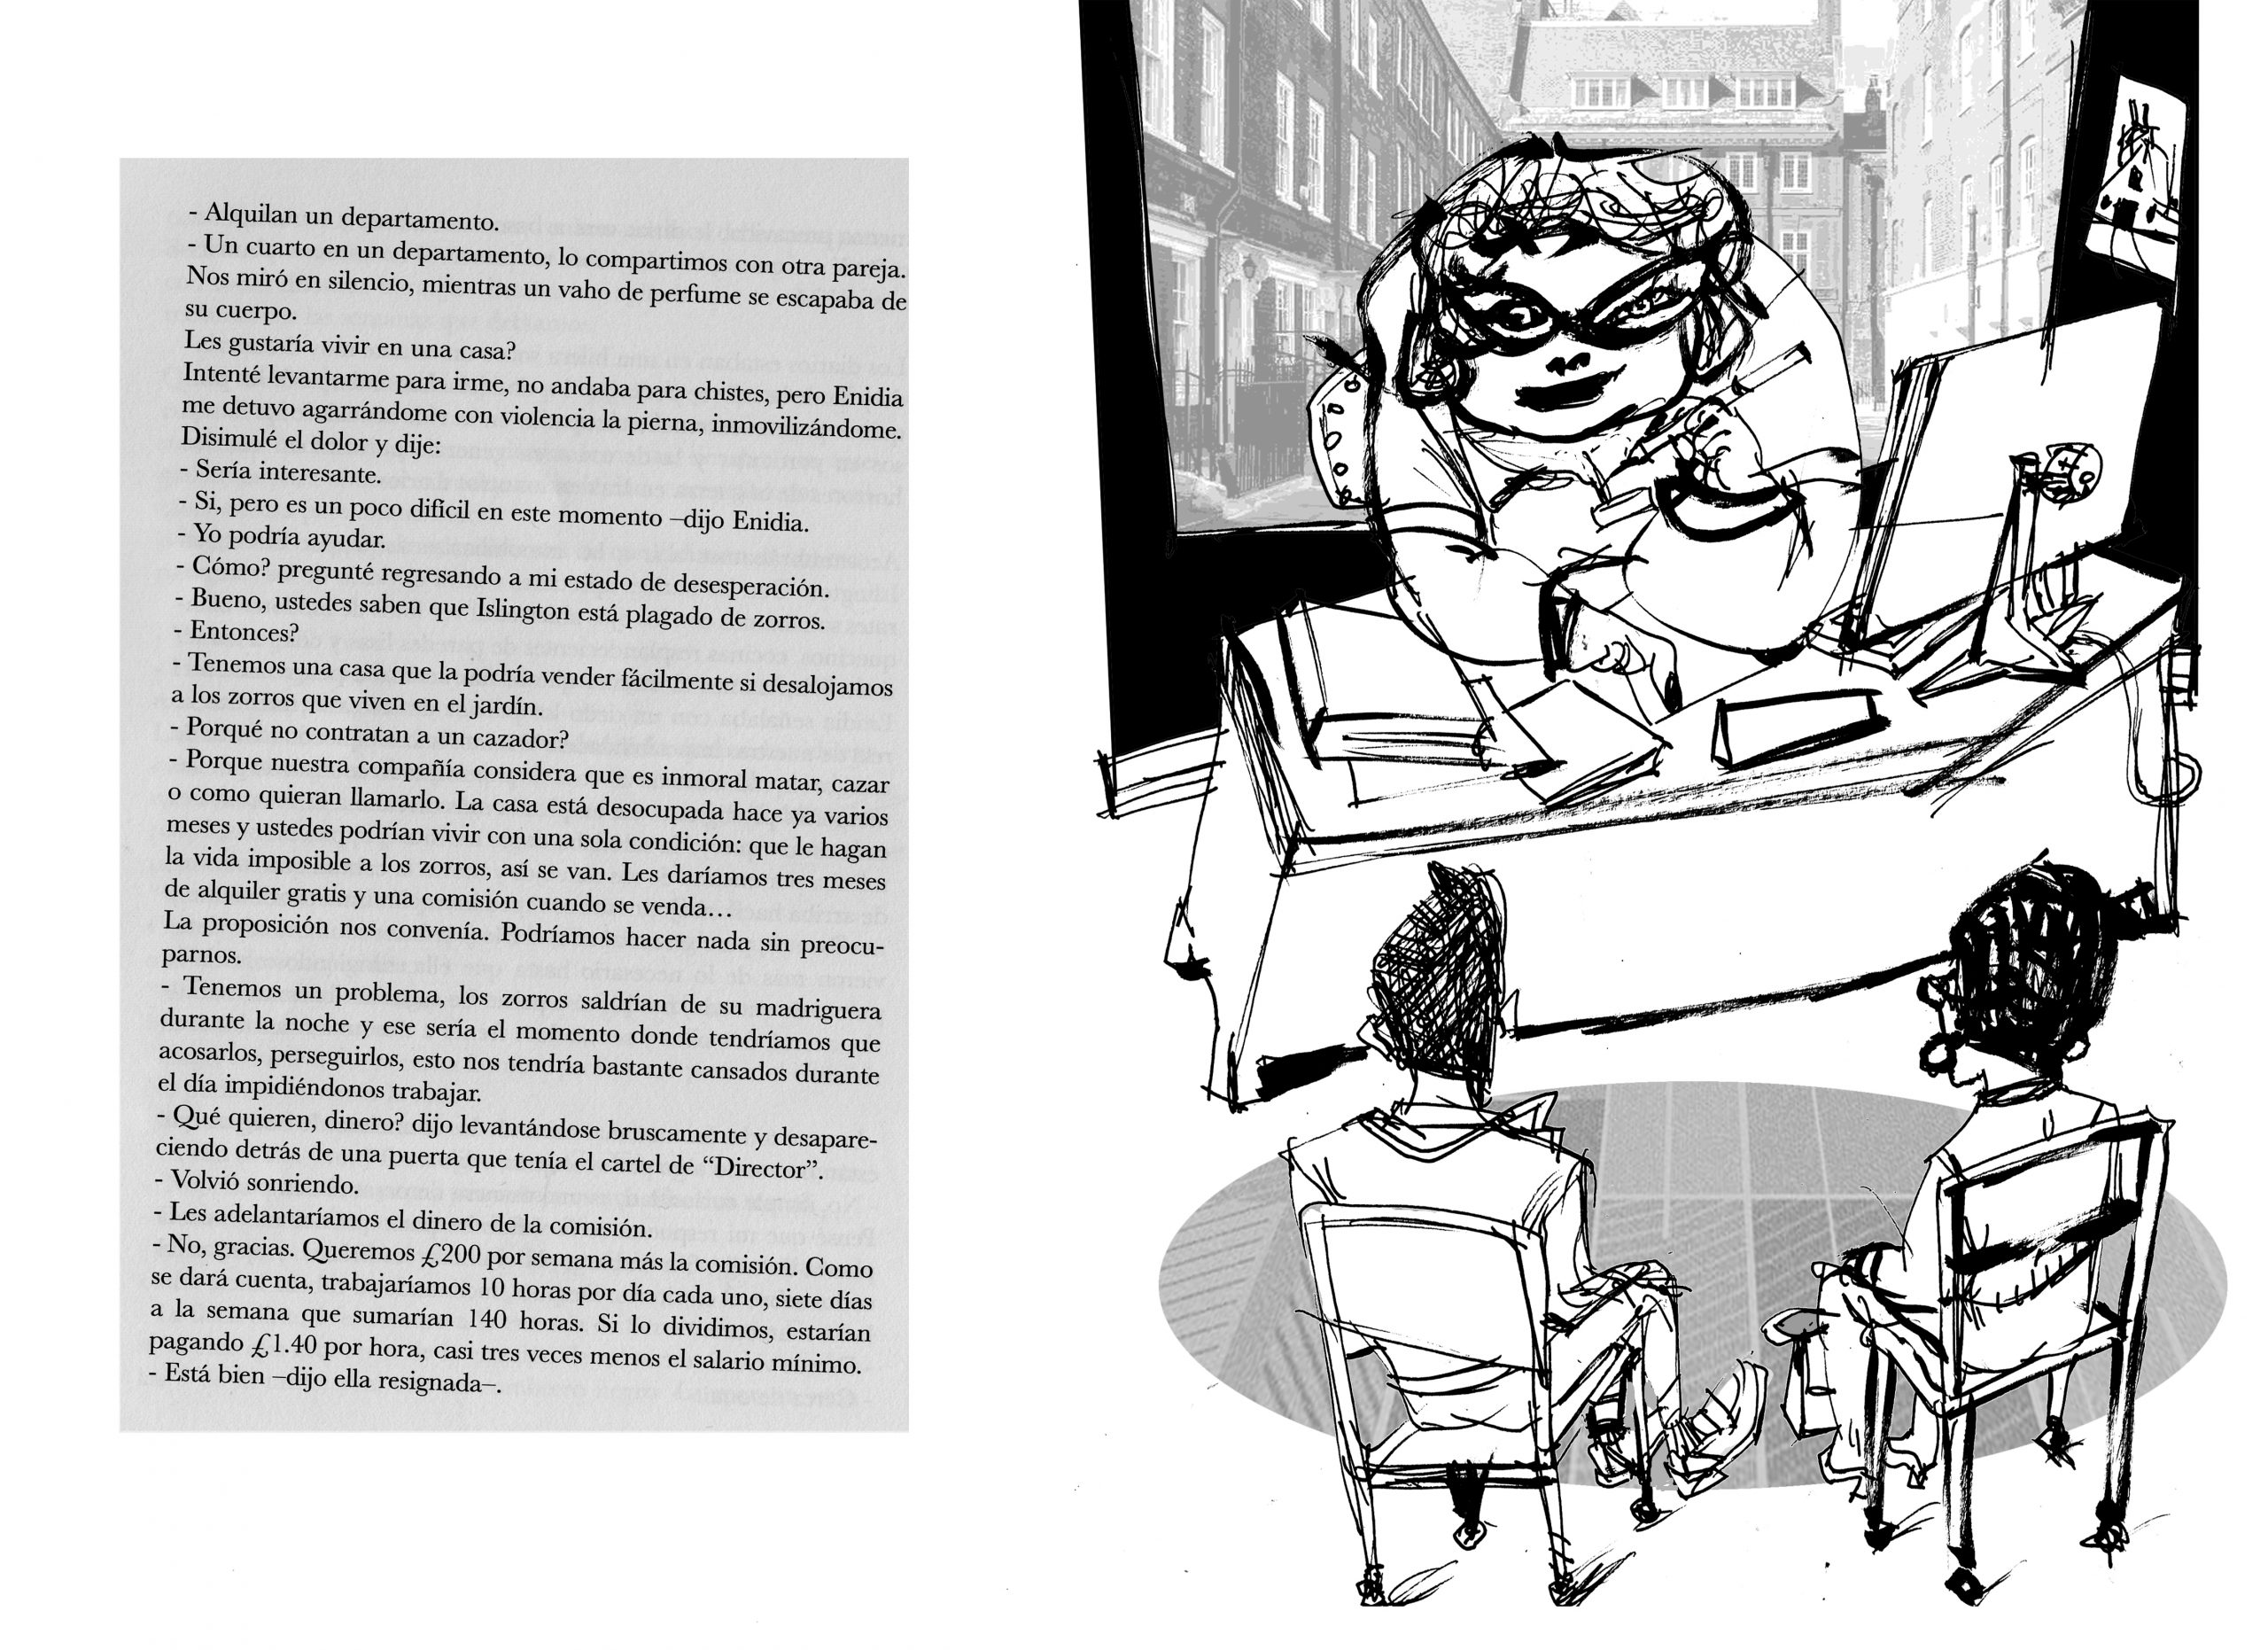 Pagina 07 With Text